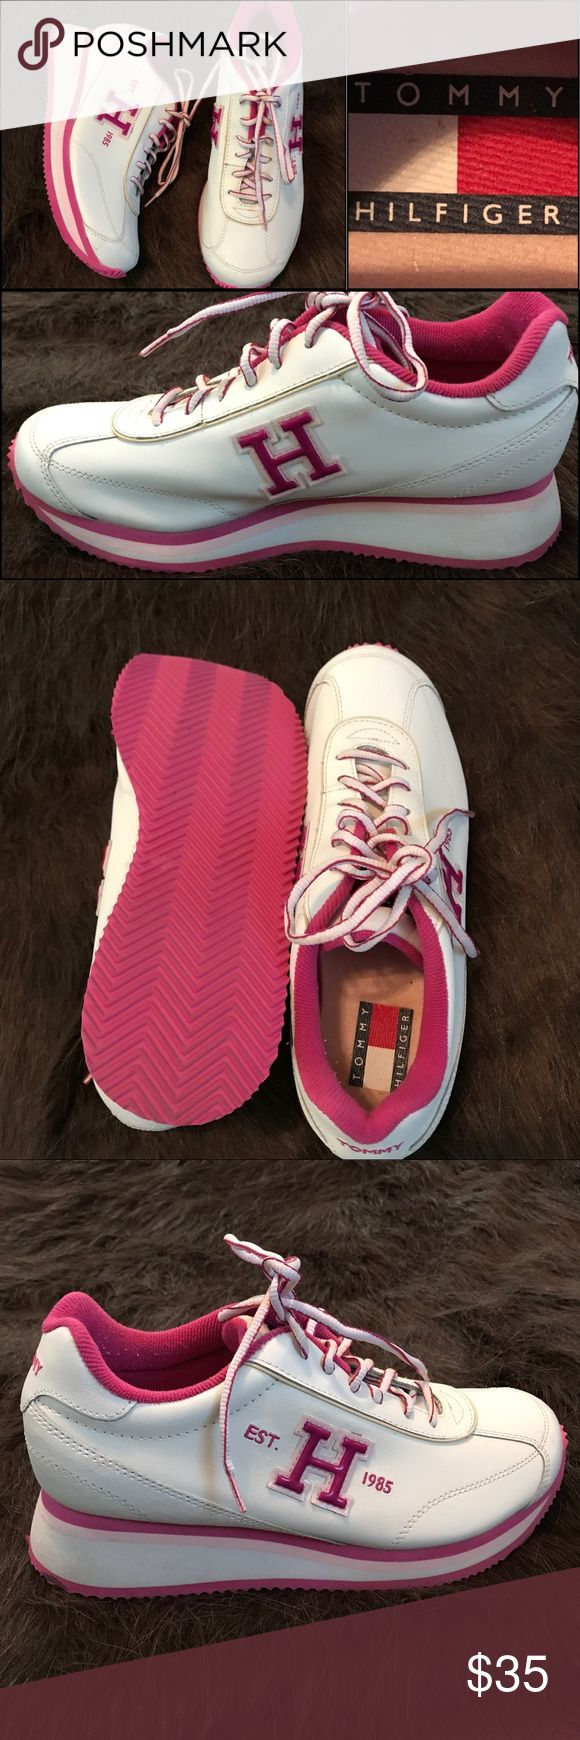 👟Tommy Hilfiger Tennis Shoes 👟 Pretty sneakers. Walking Shoes. Great pre owned condition. Great to pair up with Jeans or shorts. Tommy Hilfiger Shoes Sneakers